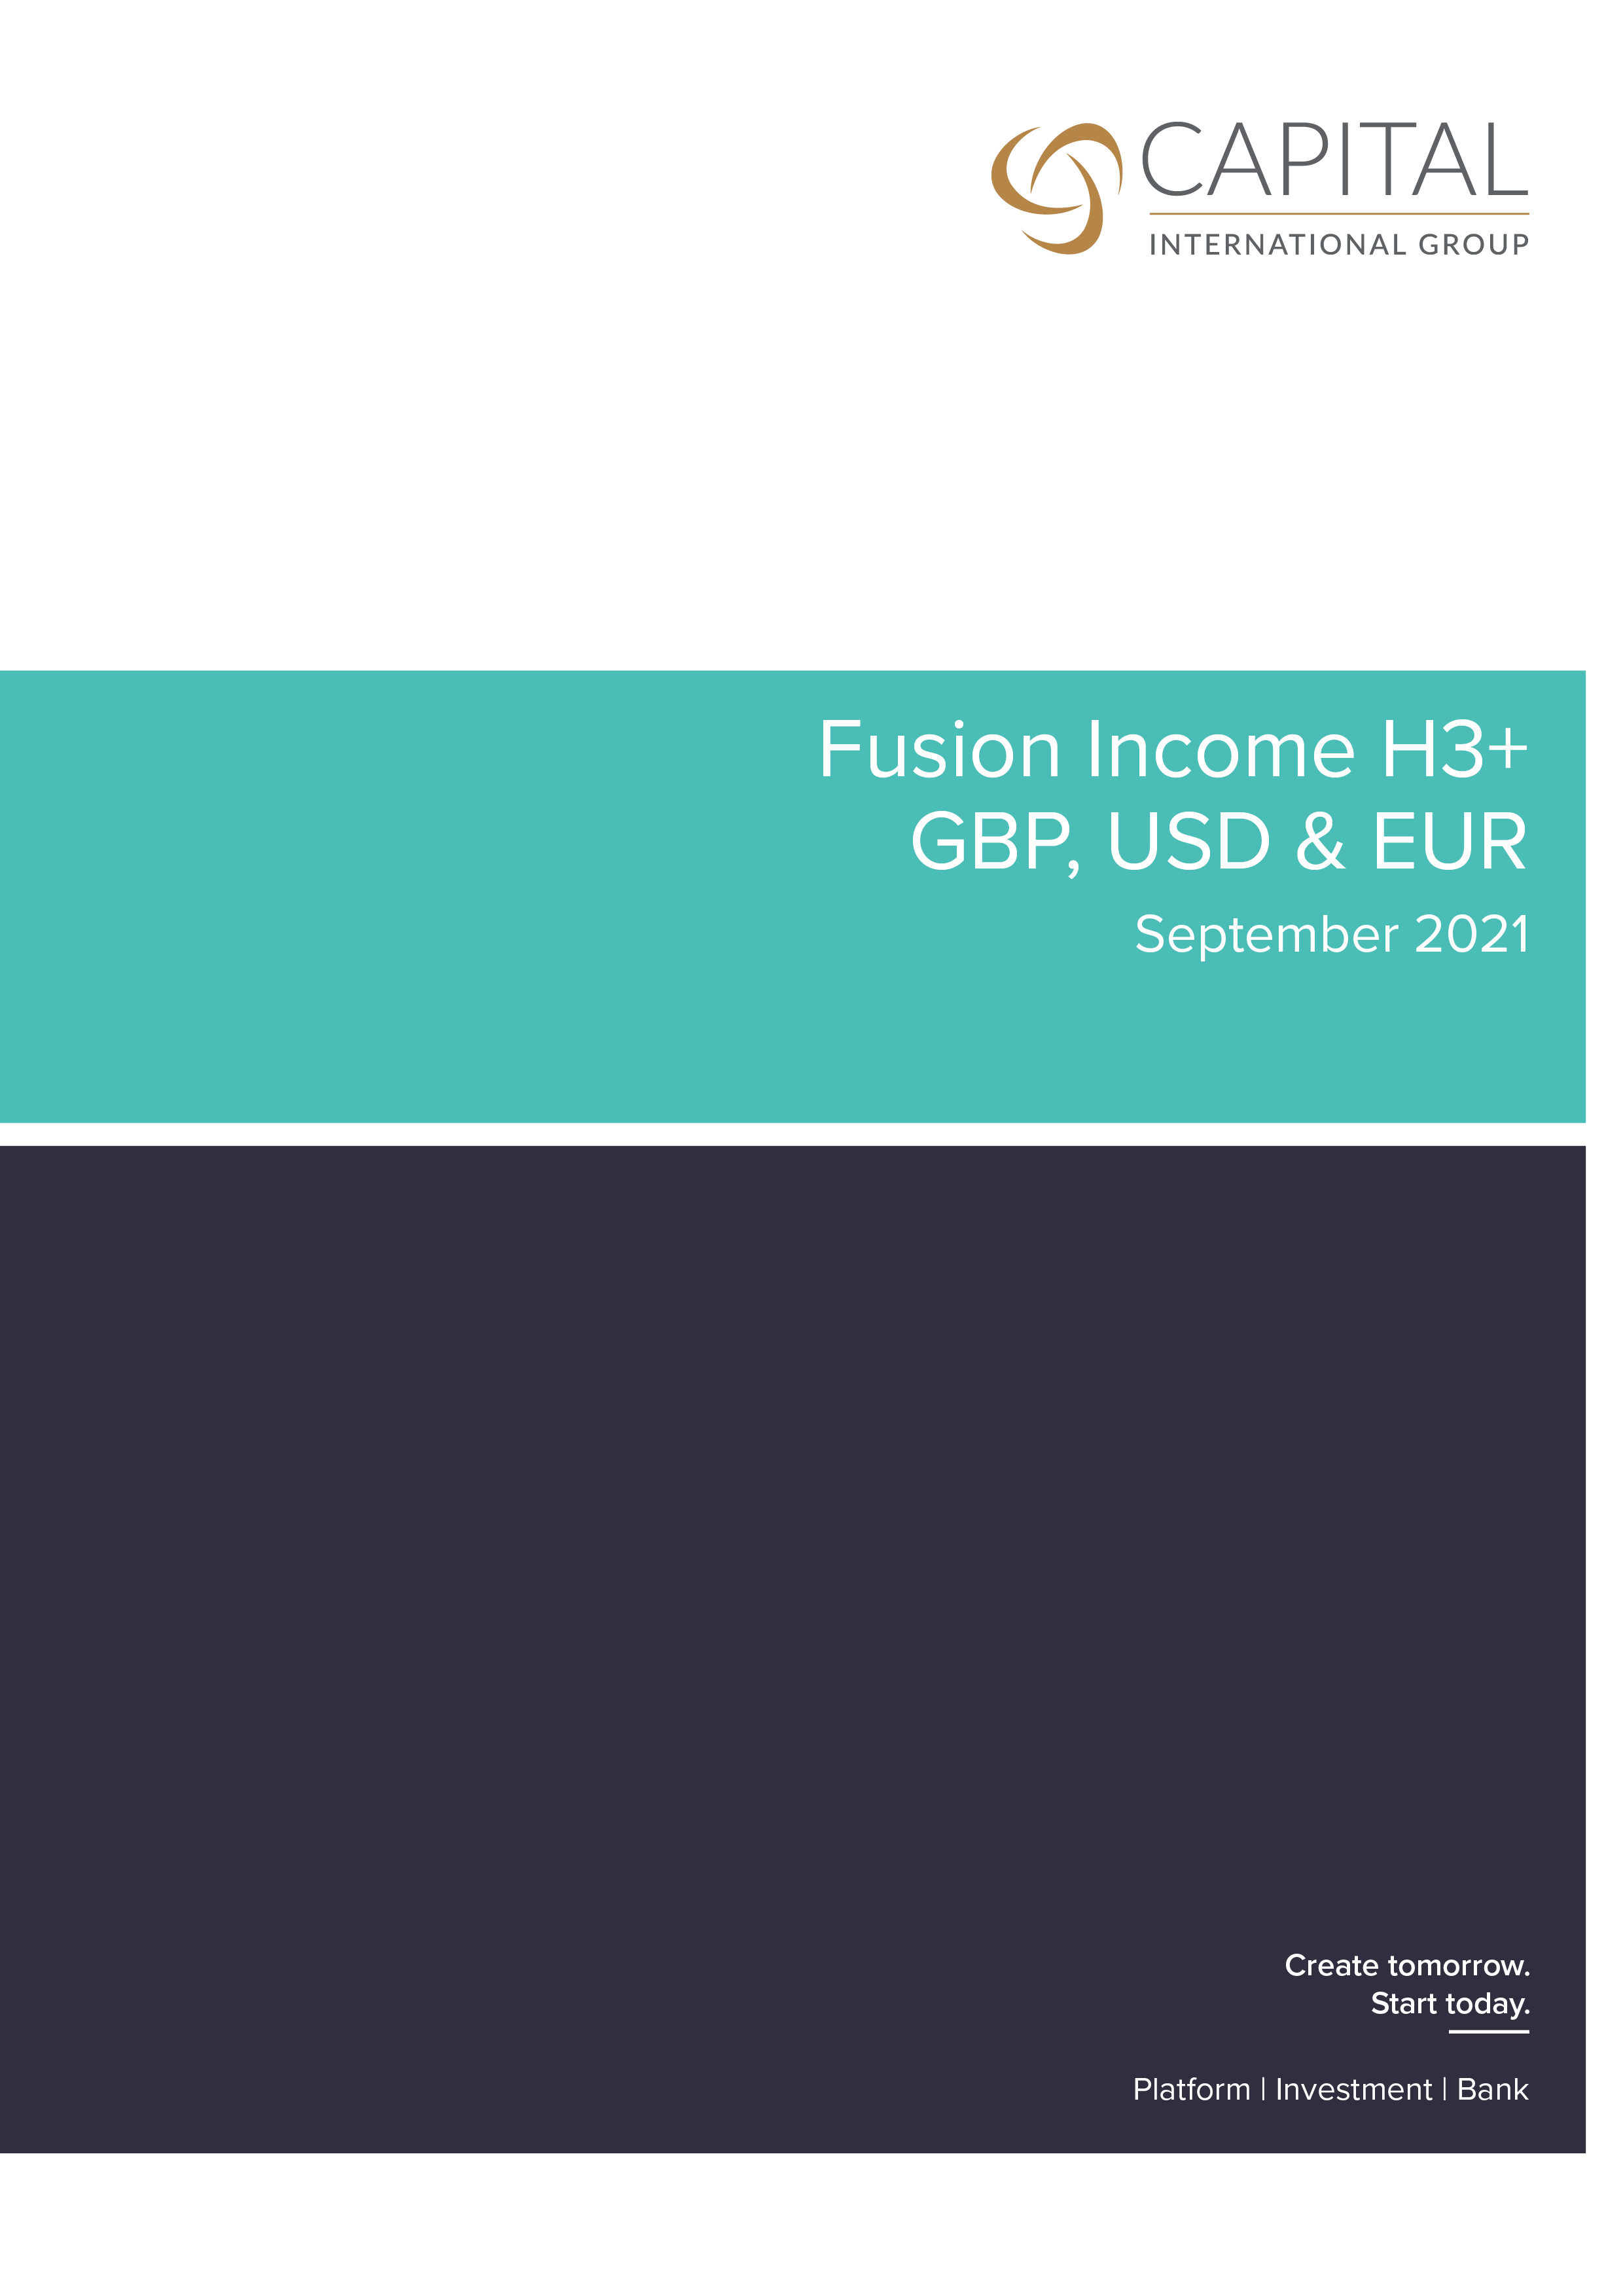 Fusion Income H3+ September 2021